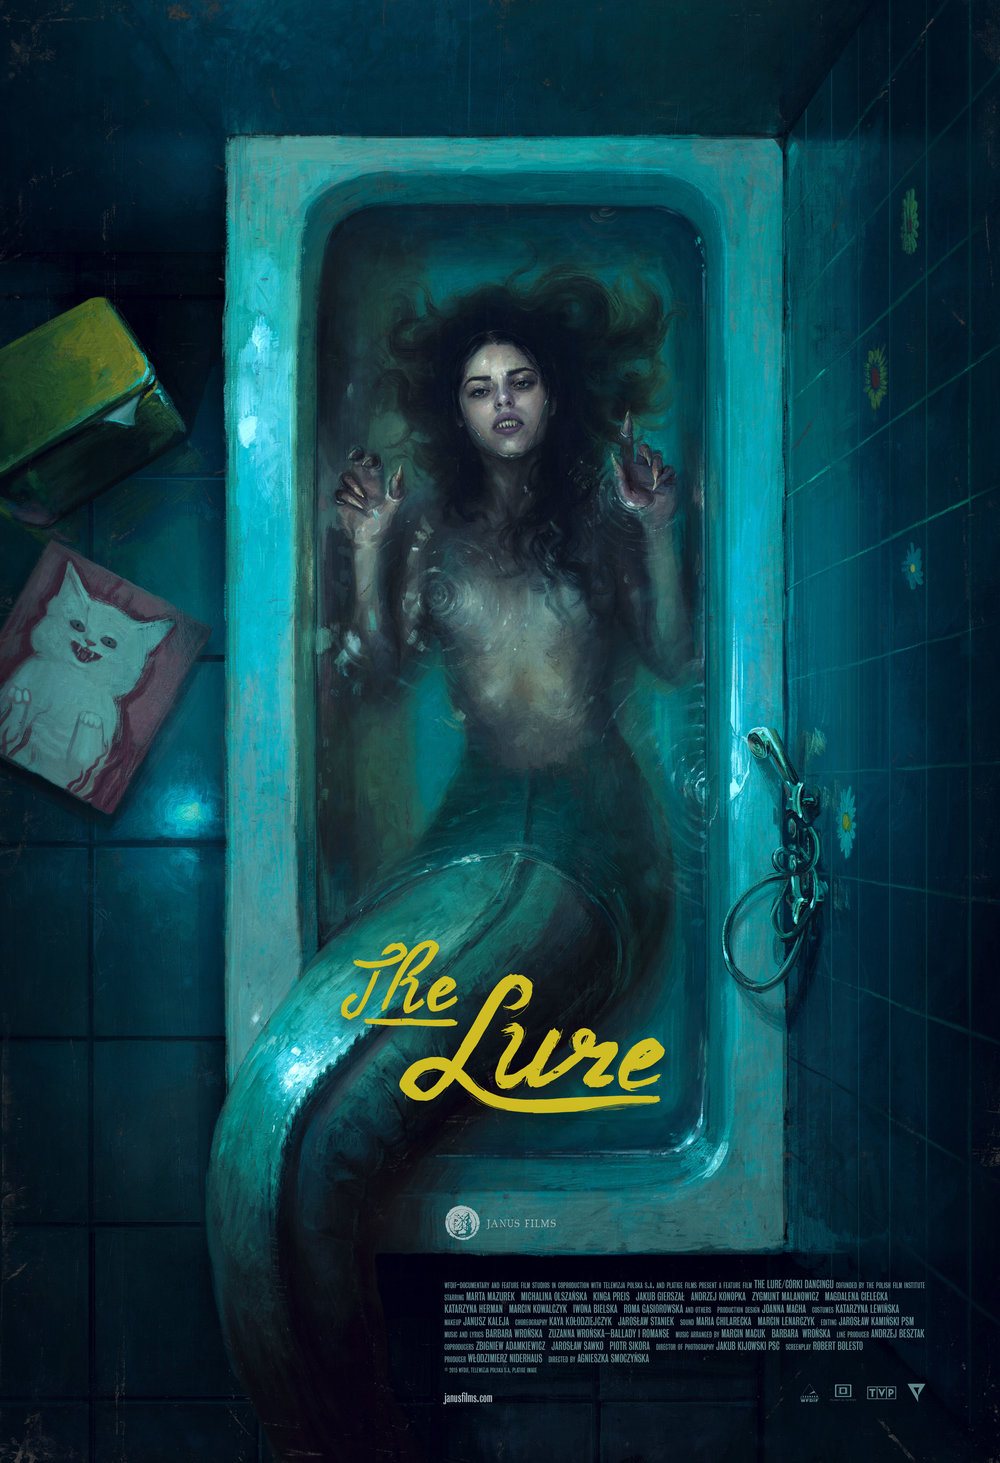 THE LURE - In this bold, genre-defying horror-musical mashup — the playful and confident debut of Polish director Agnieszka Smoczynska — a pair of carnivorous mermaid sisters are drawn ashore in an alternate '80s Poland to explore the wonders and temptations of life on land. Their tantalizing siren songs and otherworldly aura make them overnight sensations as nightclub singers in the half-glam, half-decrepit fantasy world of Smoczynska's imagining. In a visceral twist on Hans Christian Andersen's original Little Mermaid tale, one sister falls for a human, and as the bonds of sisterhood are tested, the lines between love and survival get blurred. A savage coming-of-age fairytale with a catchy new-wave soundtrack, lavishly grimy sets, and outrageous musical numbers, The Lure explores its themes of sexuality, exploitation, and the compromises of adulthood with energy and originality.